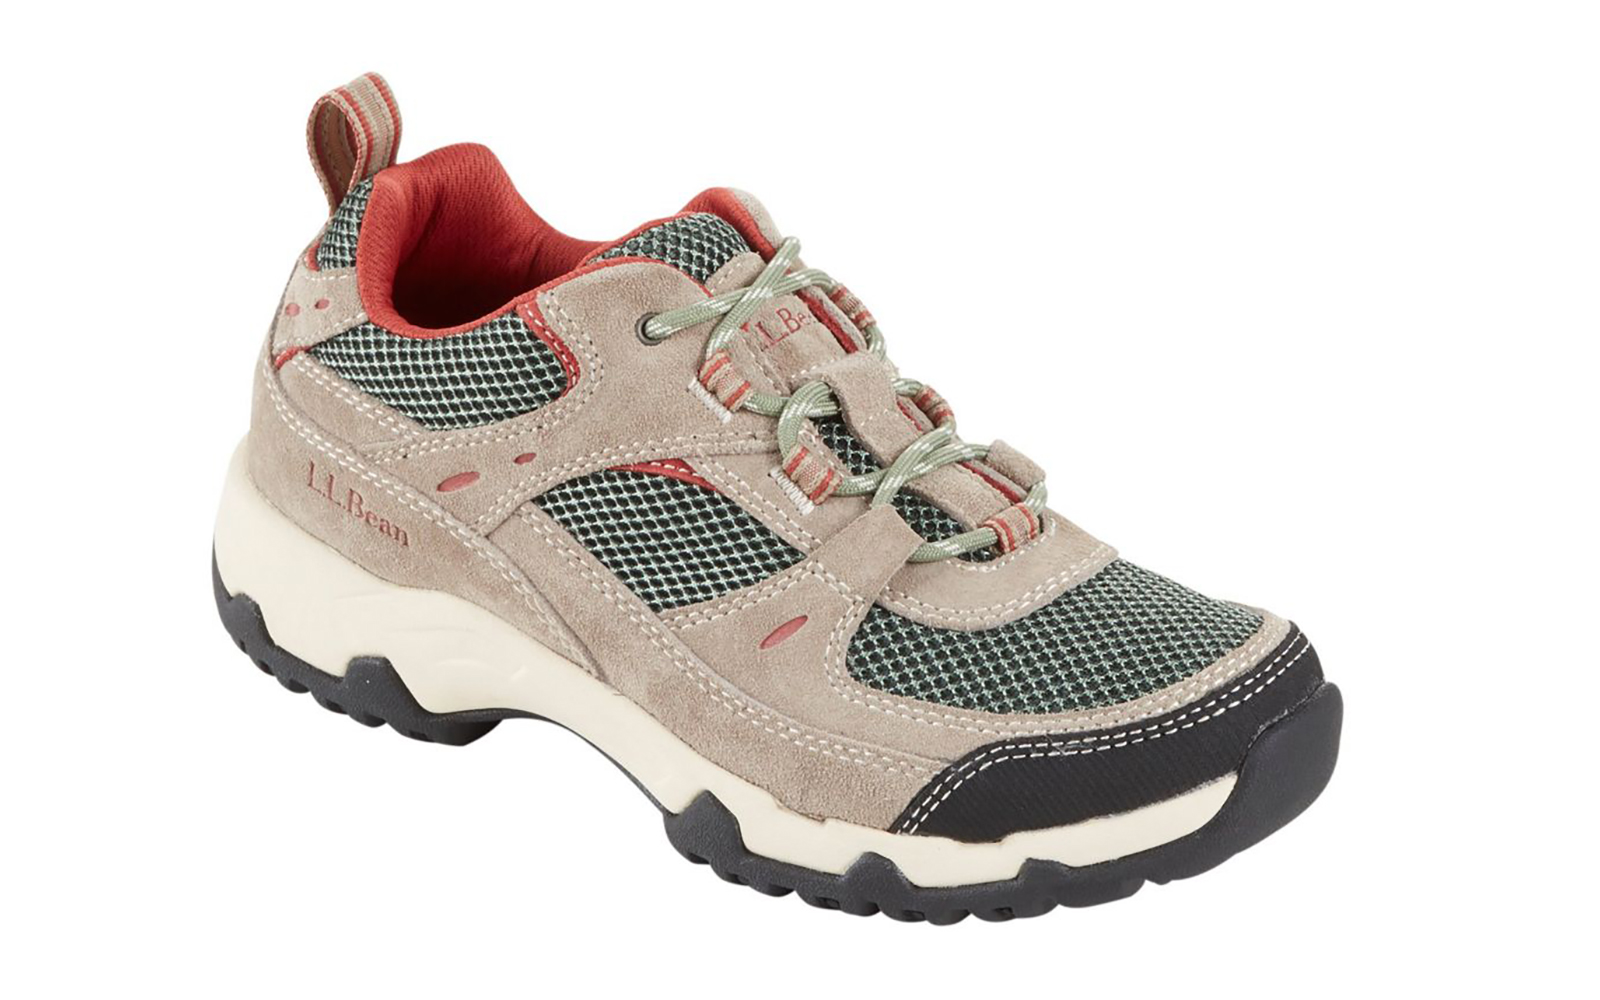 L.L.Bean Trail Model 4 Ventilated Hiking Sneakers